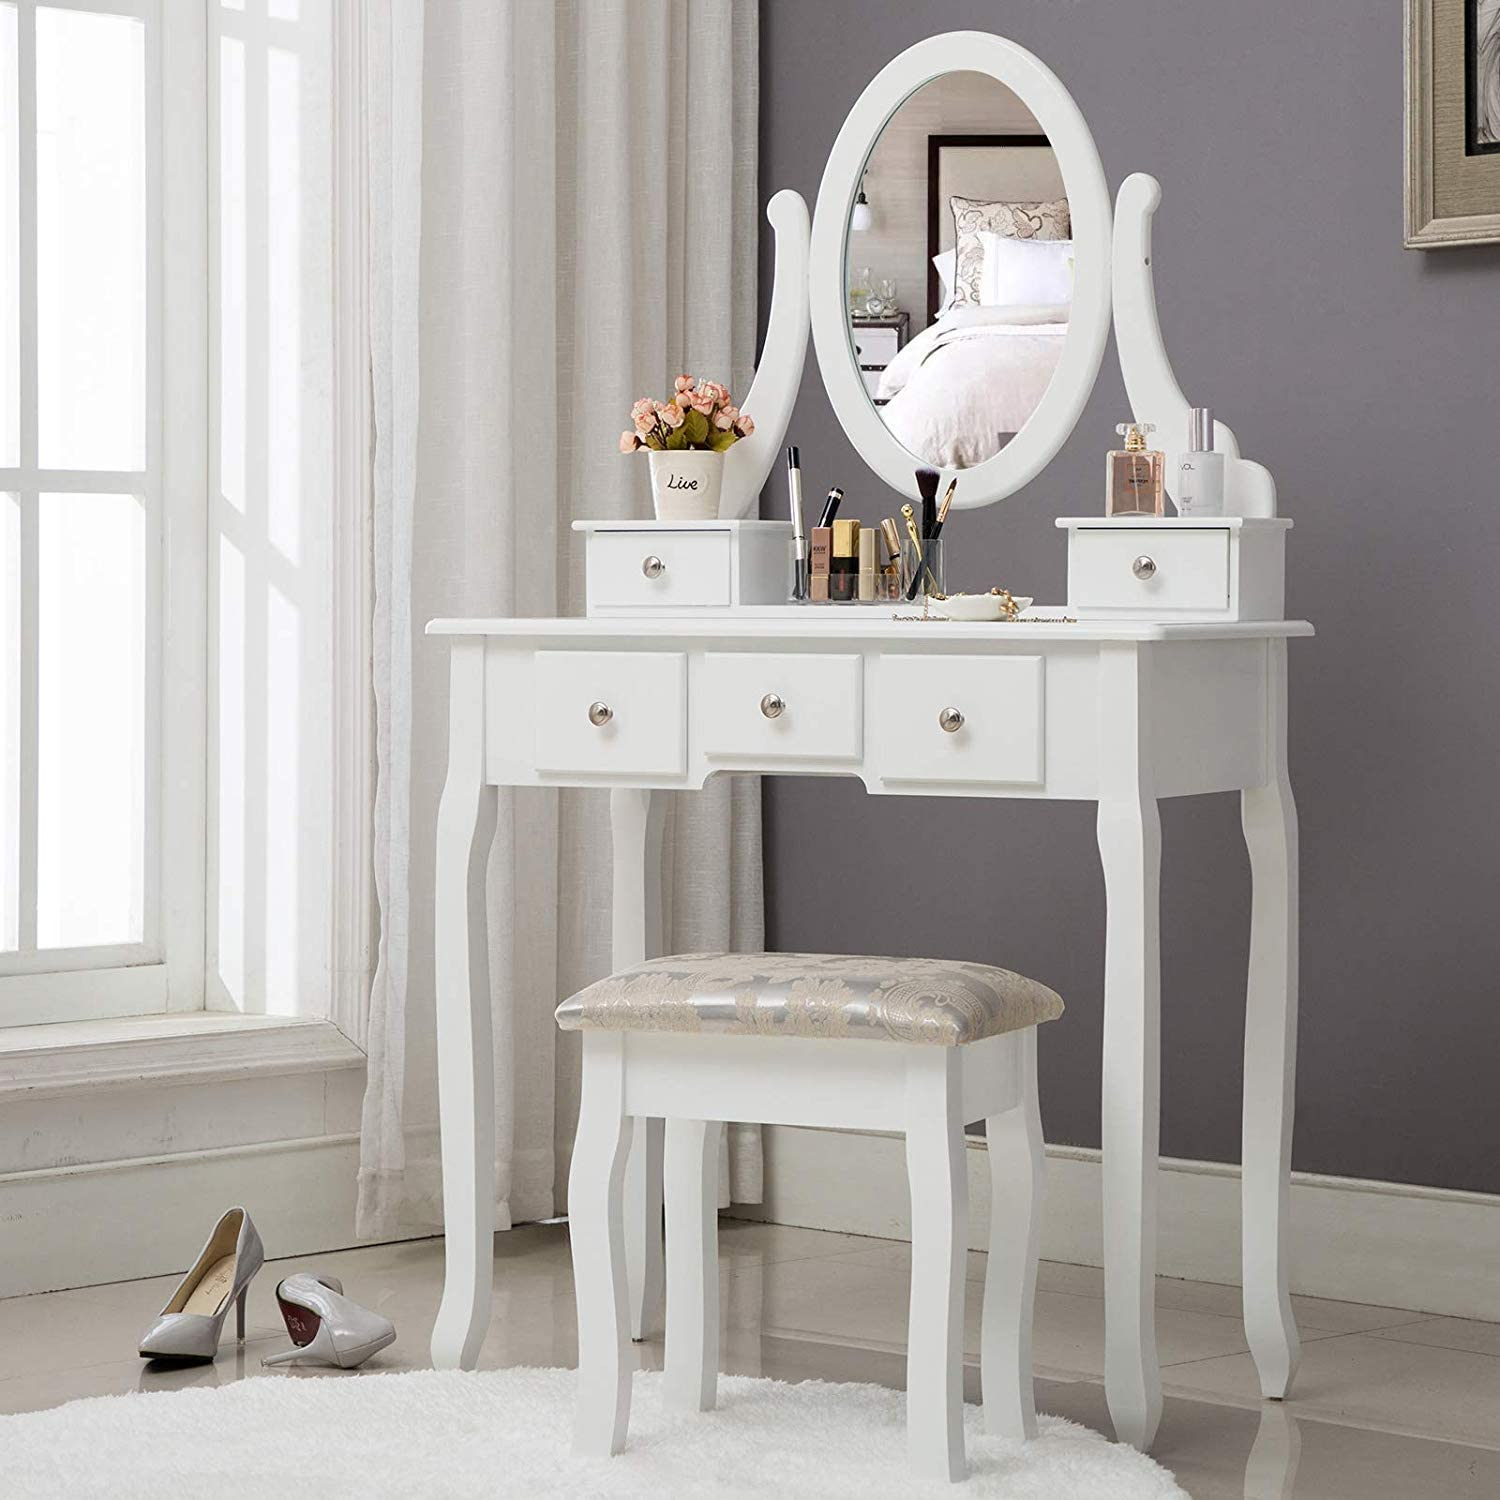 Unihome Vanity Table White Dressing Table with Mirror and 5 Drawers Small Makeup Table with Stool for Women